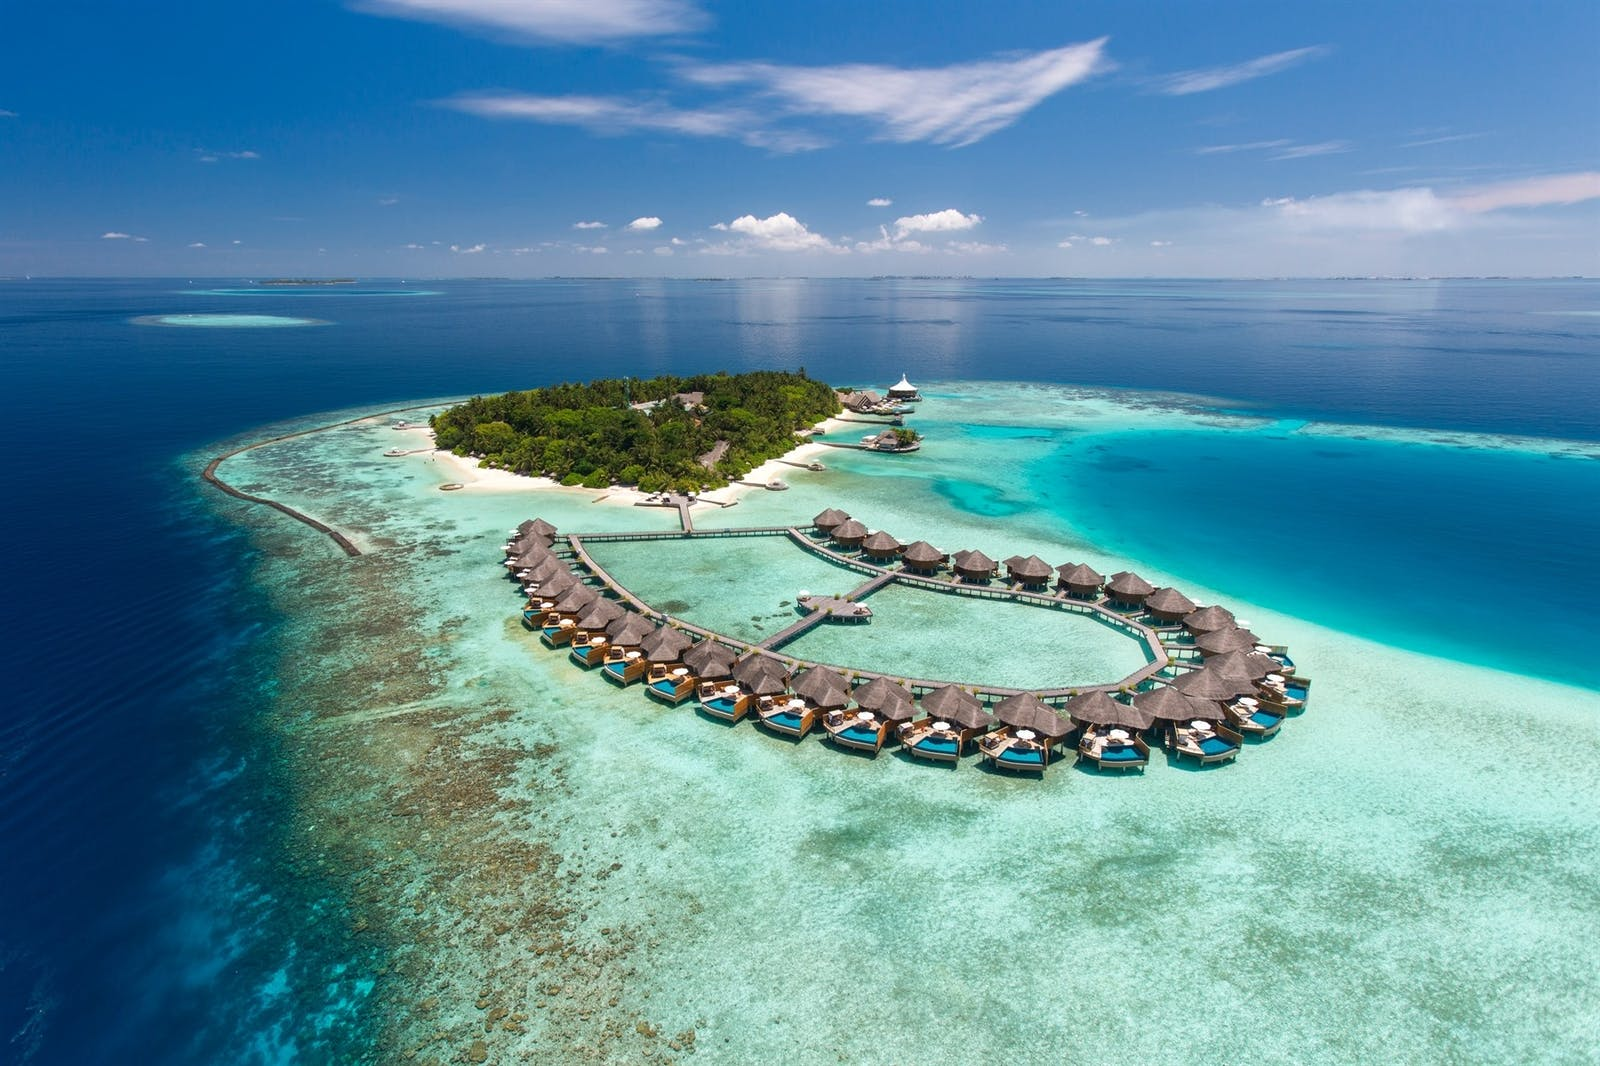 Aeriel view of Baros, Maldives